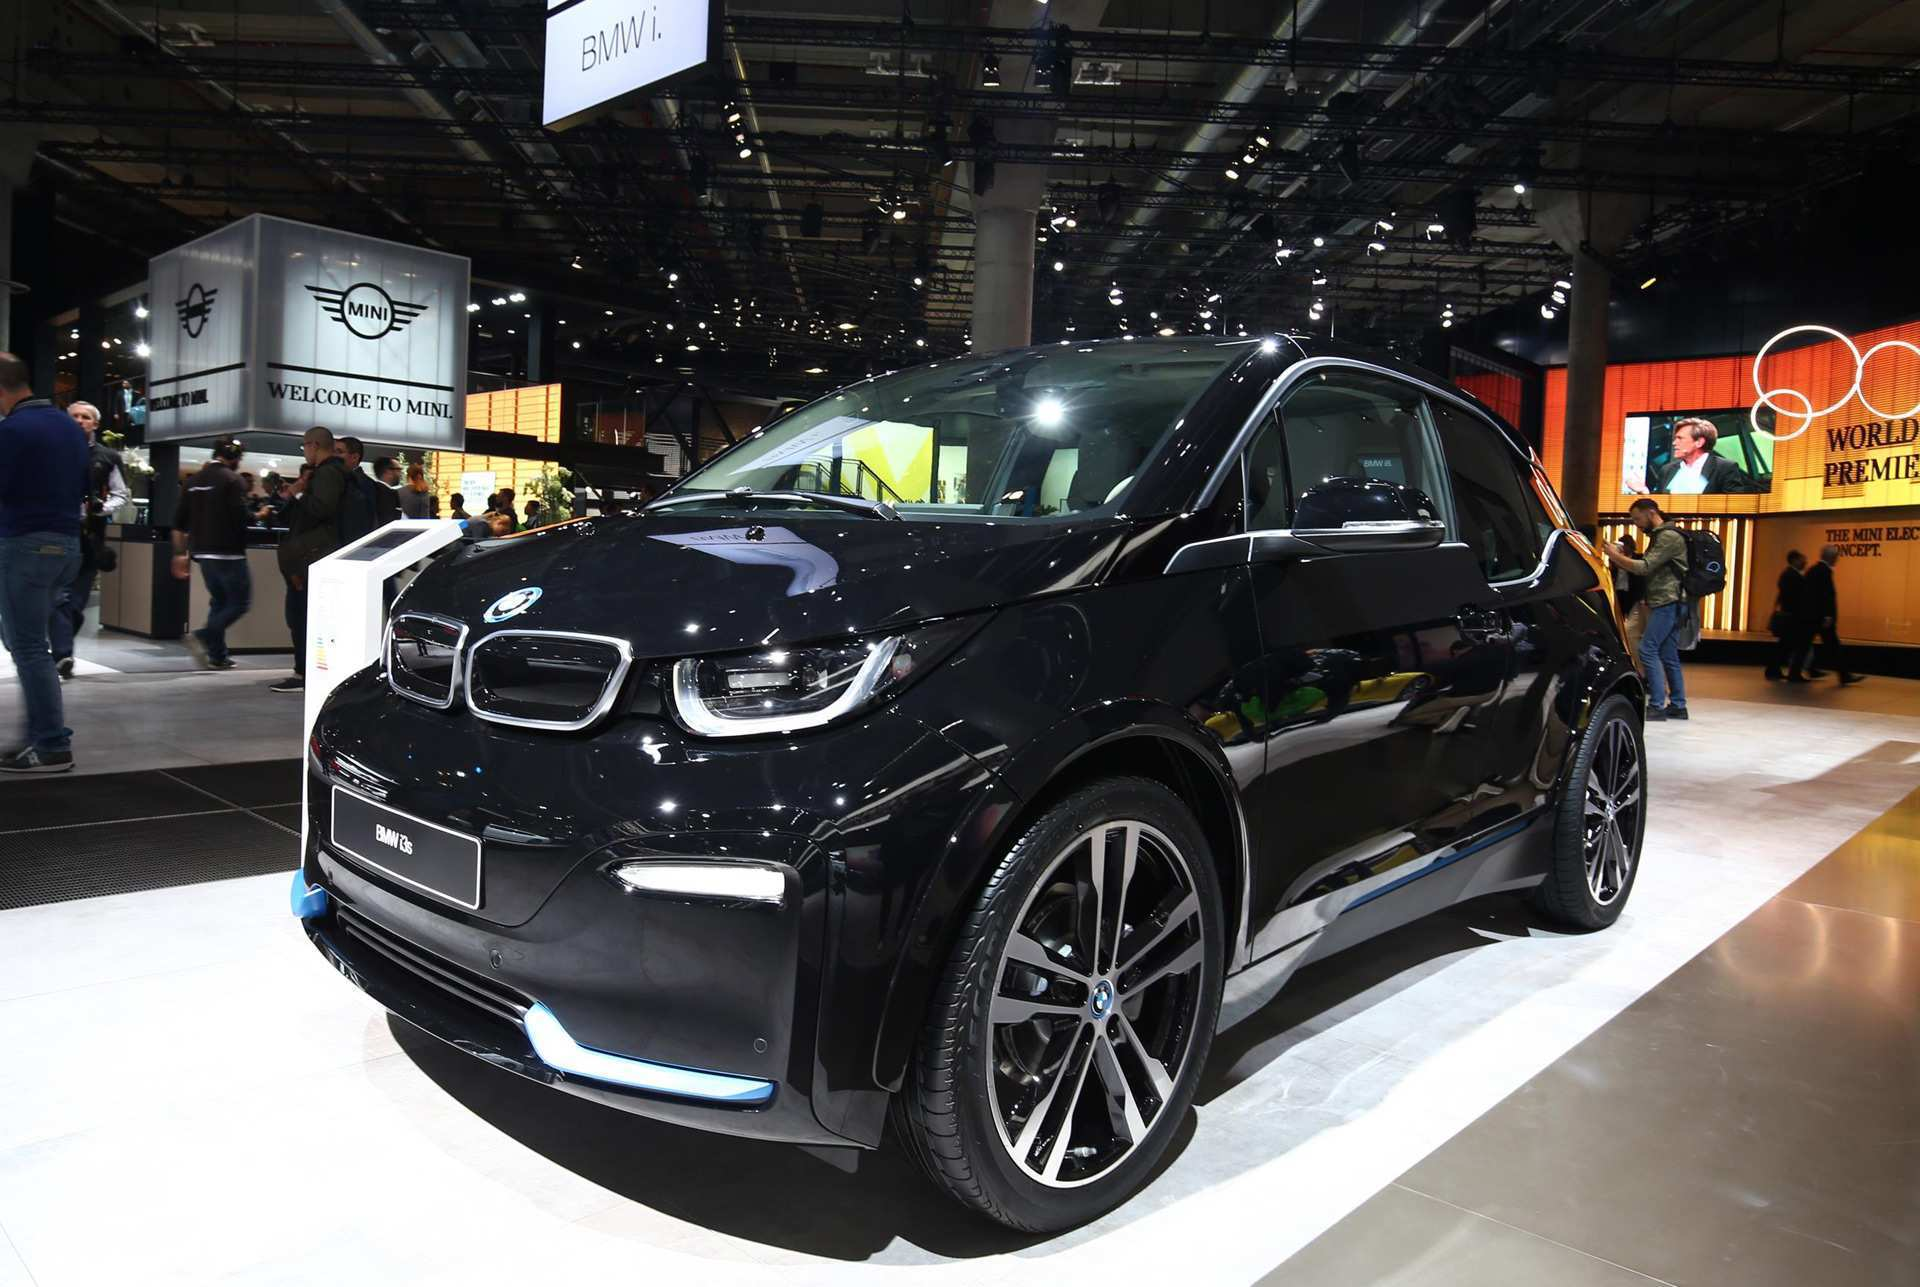 95 All New BMW Elbil 2020 Redesign And Concept